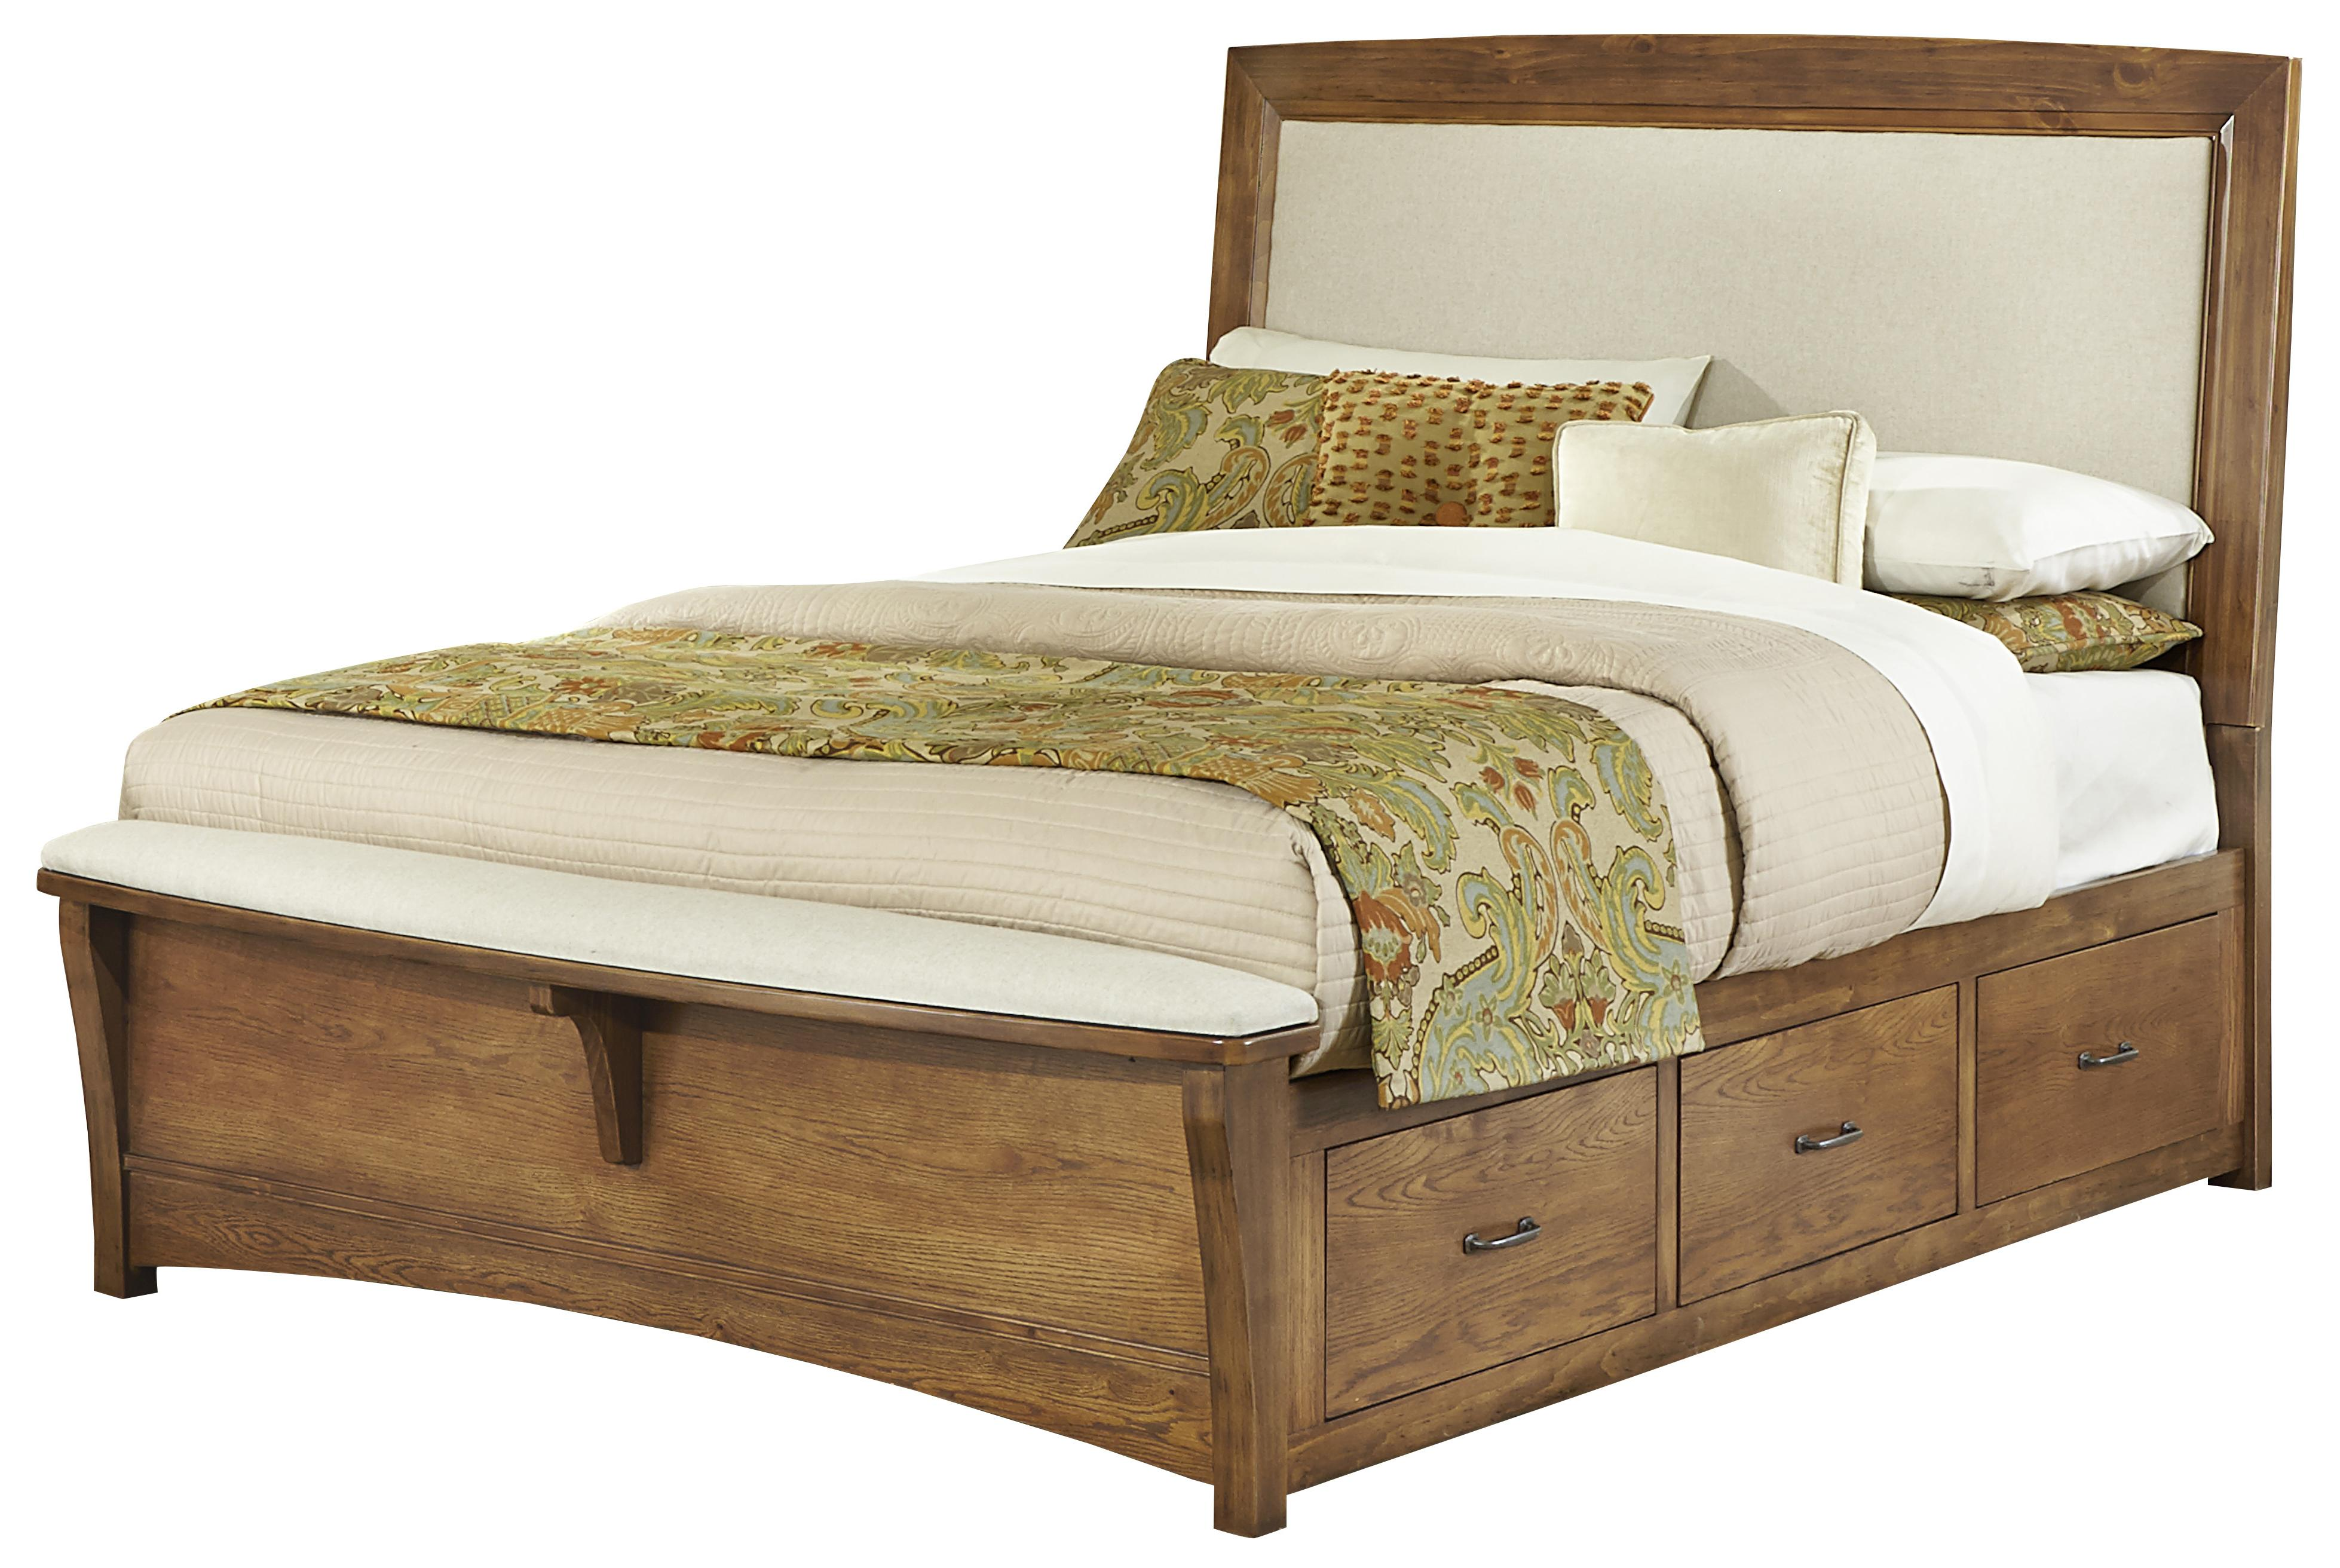 Vaughan Bassett Transitions Queen Upholstered Bed With 1